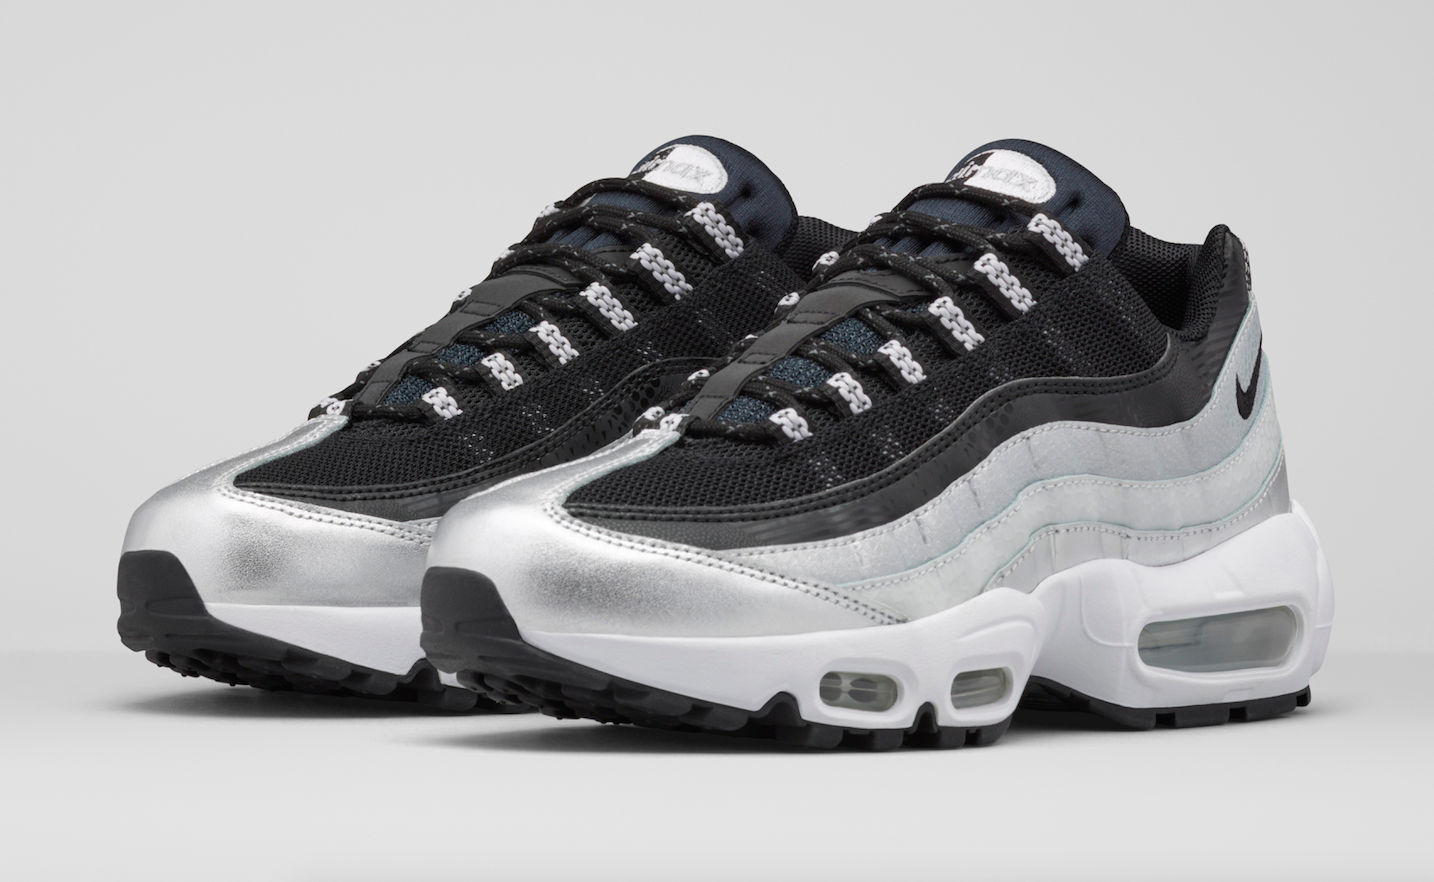 Release Date: Nike WMNS Air Max 95